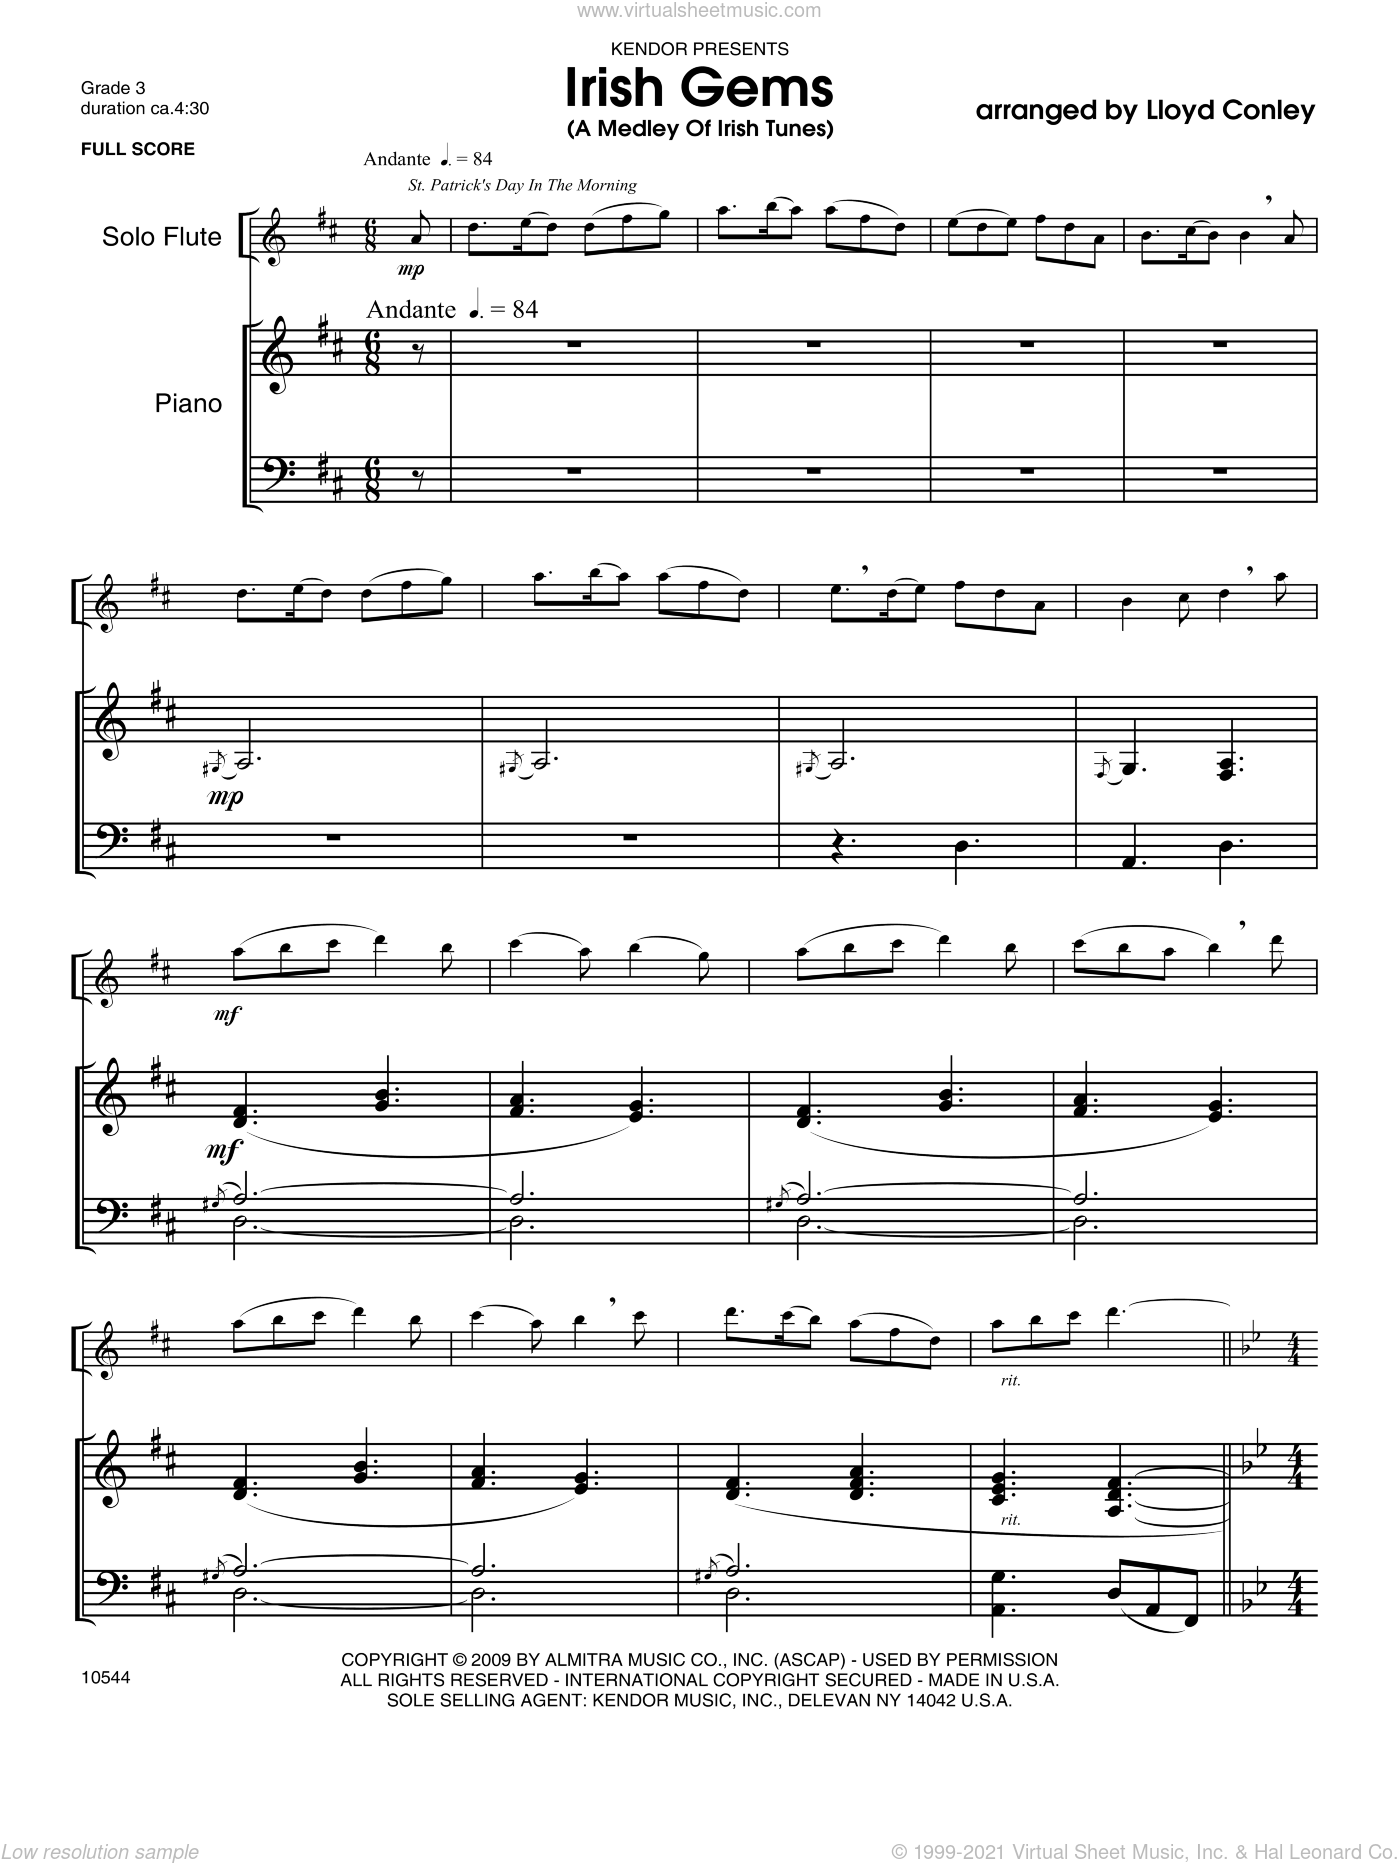 Irish Gems (A Medley Of 7 Irish Tunes) sheet music for flute and piano (piano/score) by Conley